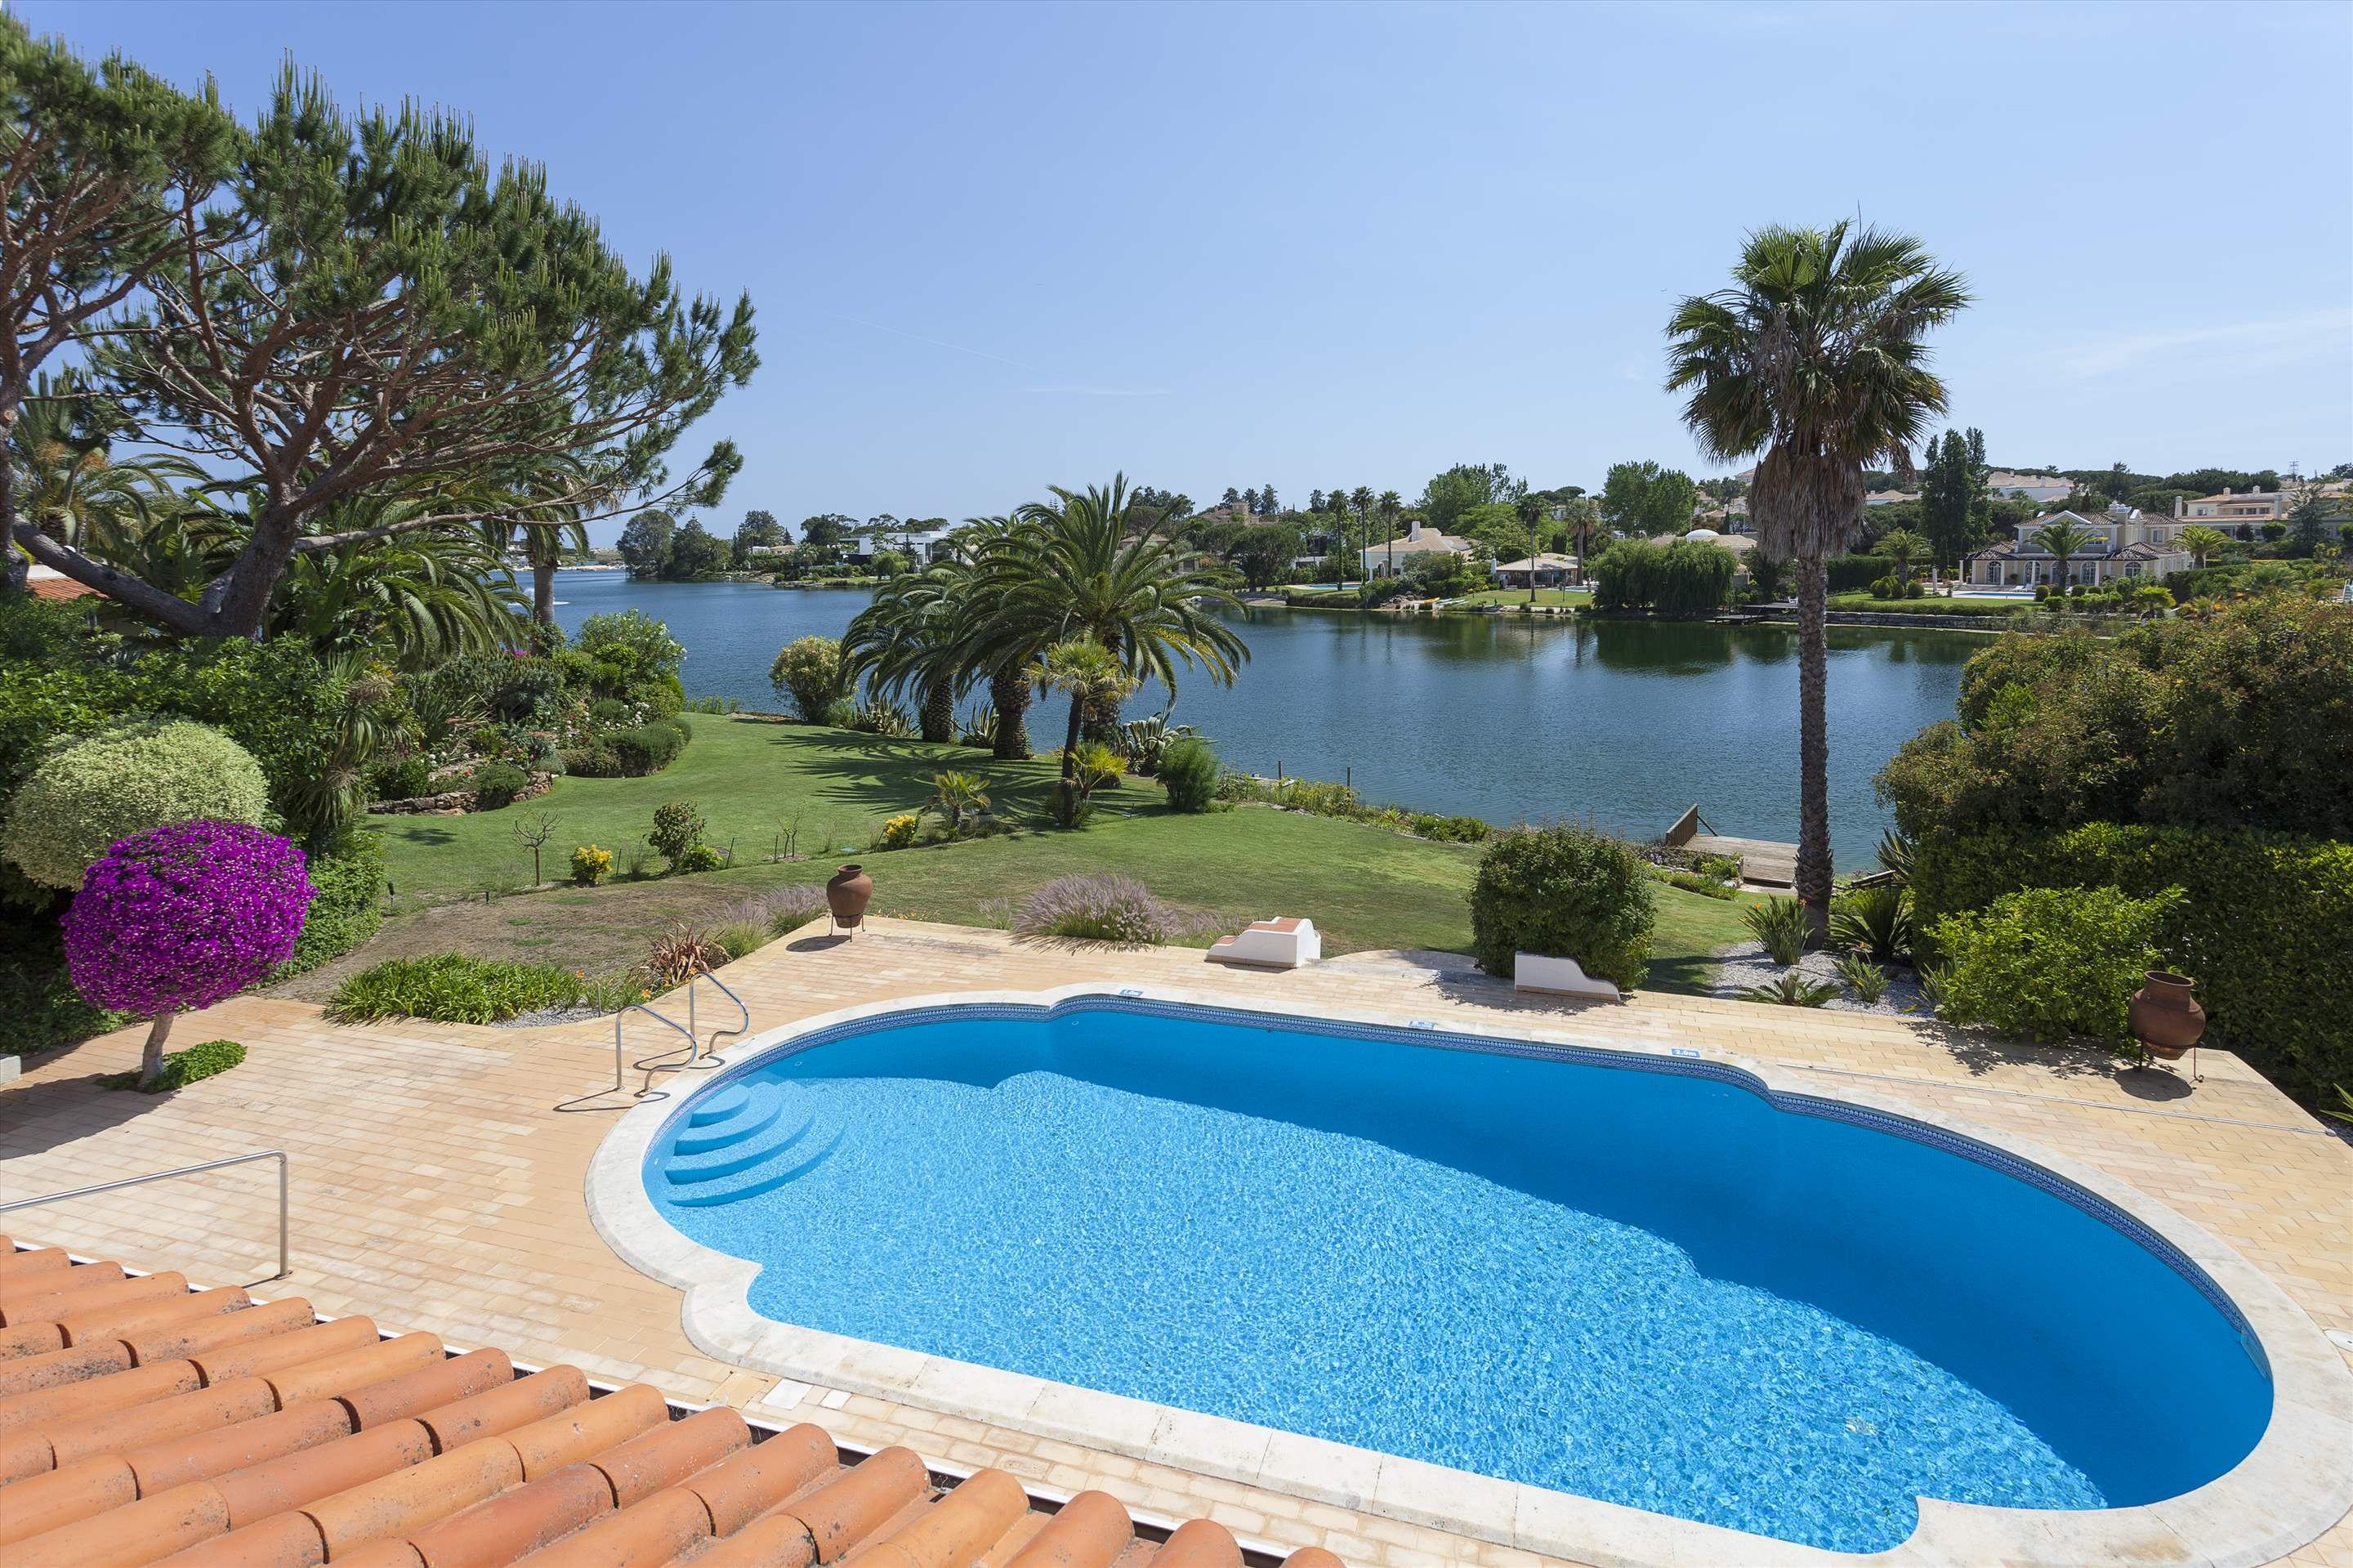 Villa Lake View, 4 bedroom villa in Quinta do Lago, Algarve Photo #16